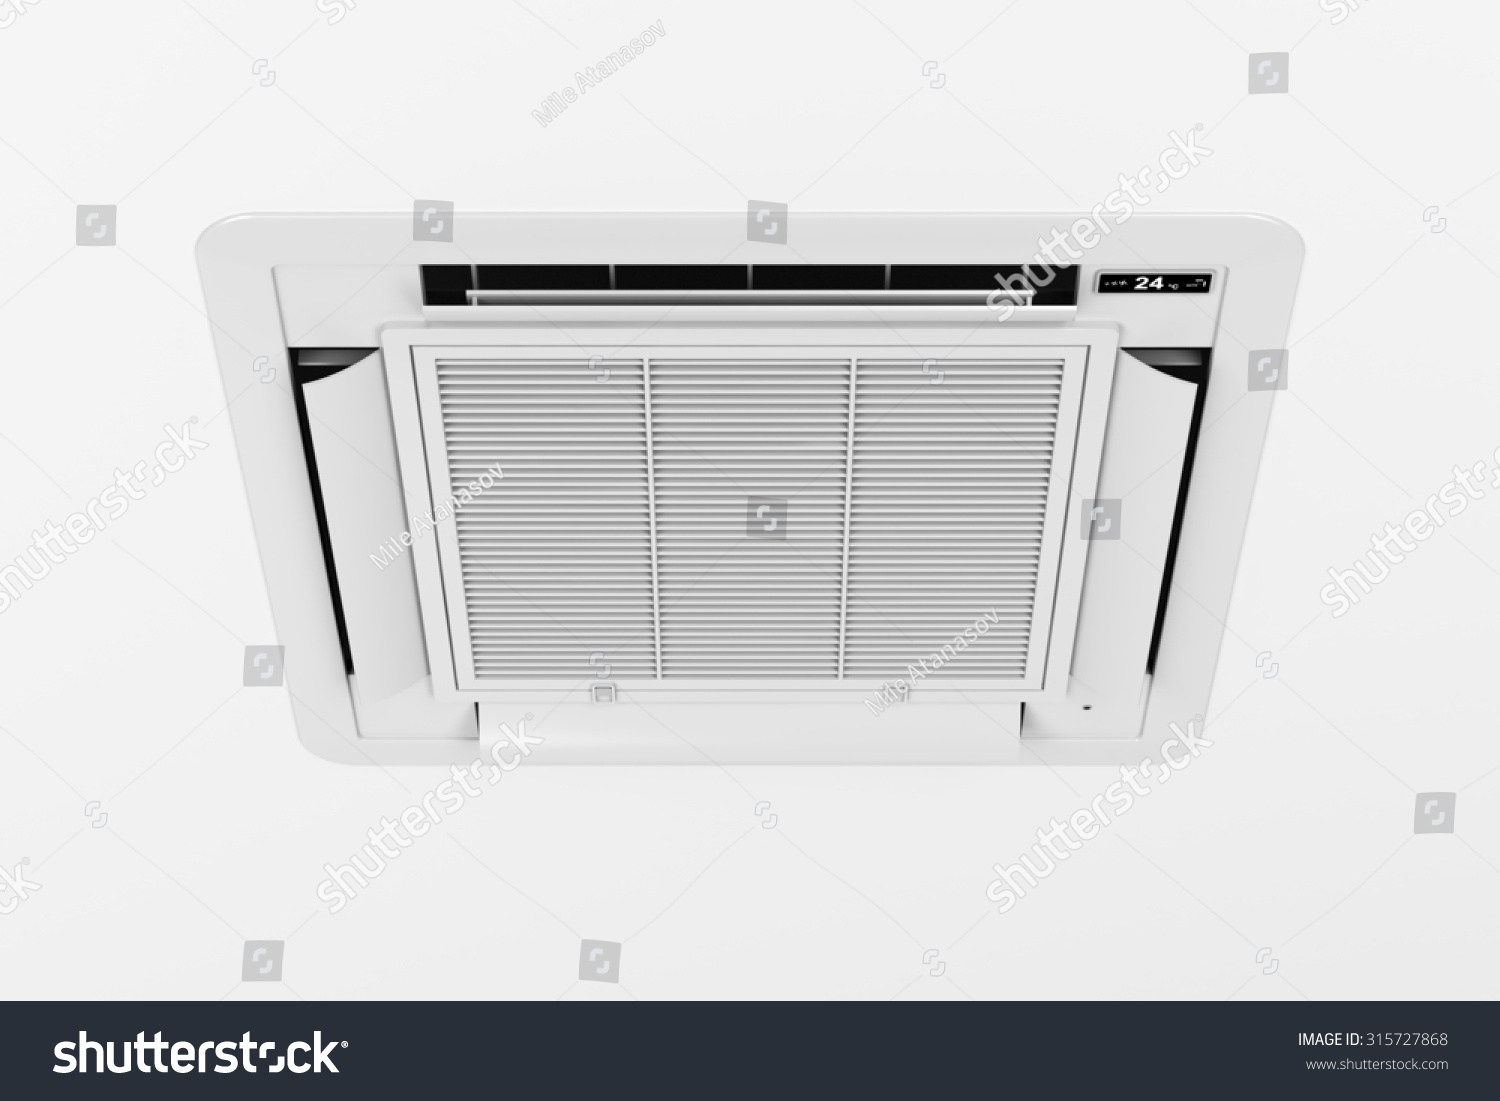 Ceiling Mounted Cassette Type Air Conditioner Stock Photo 315727868  #262B33